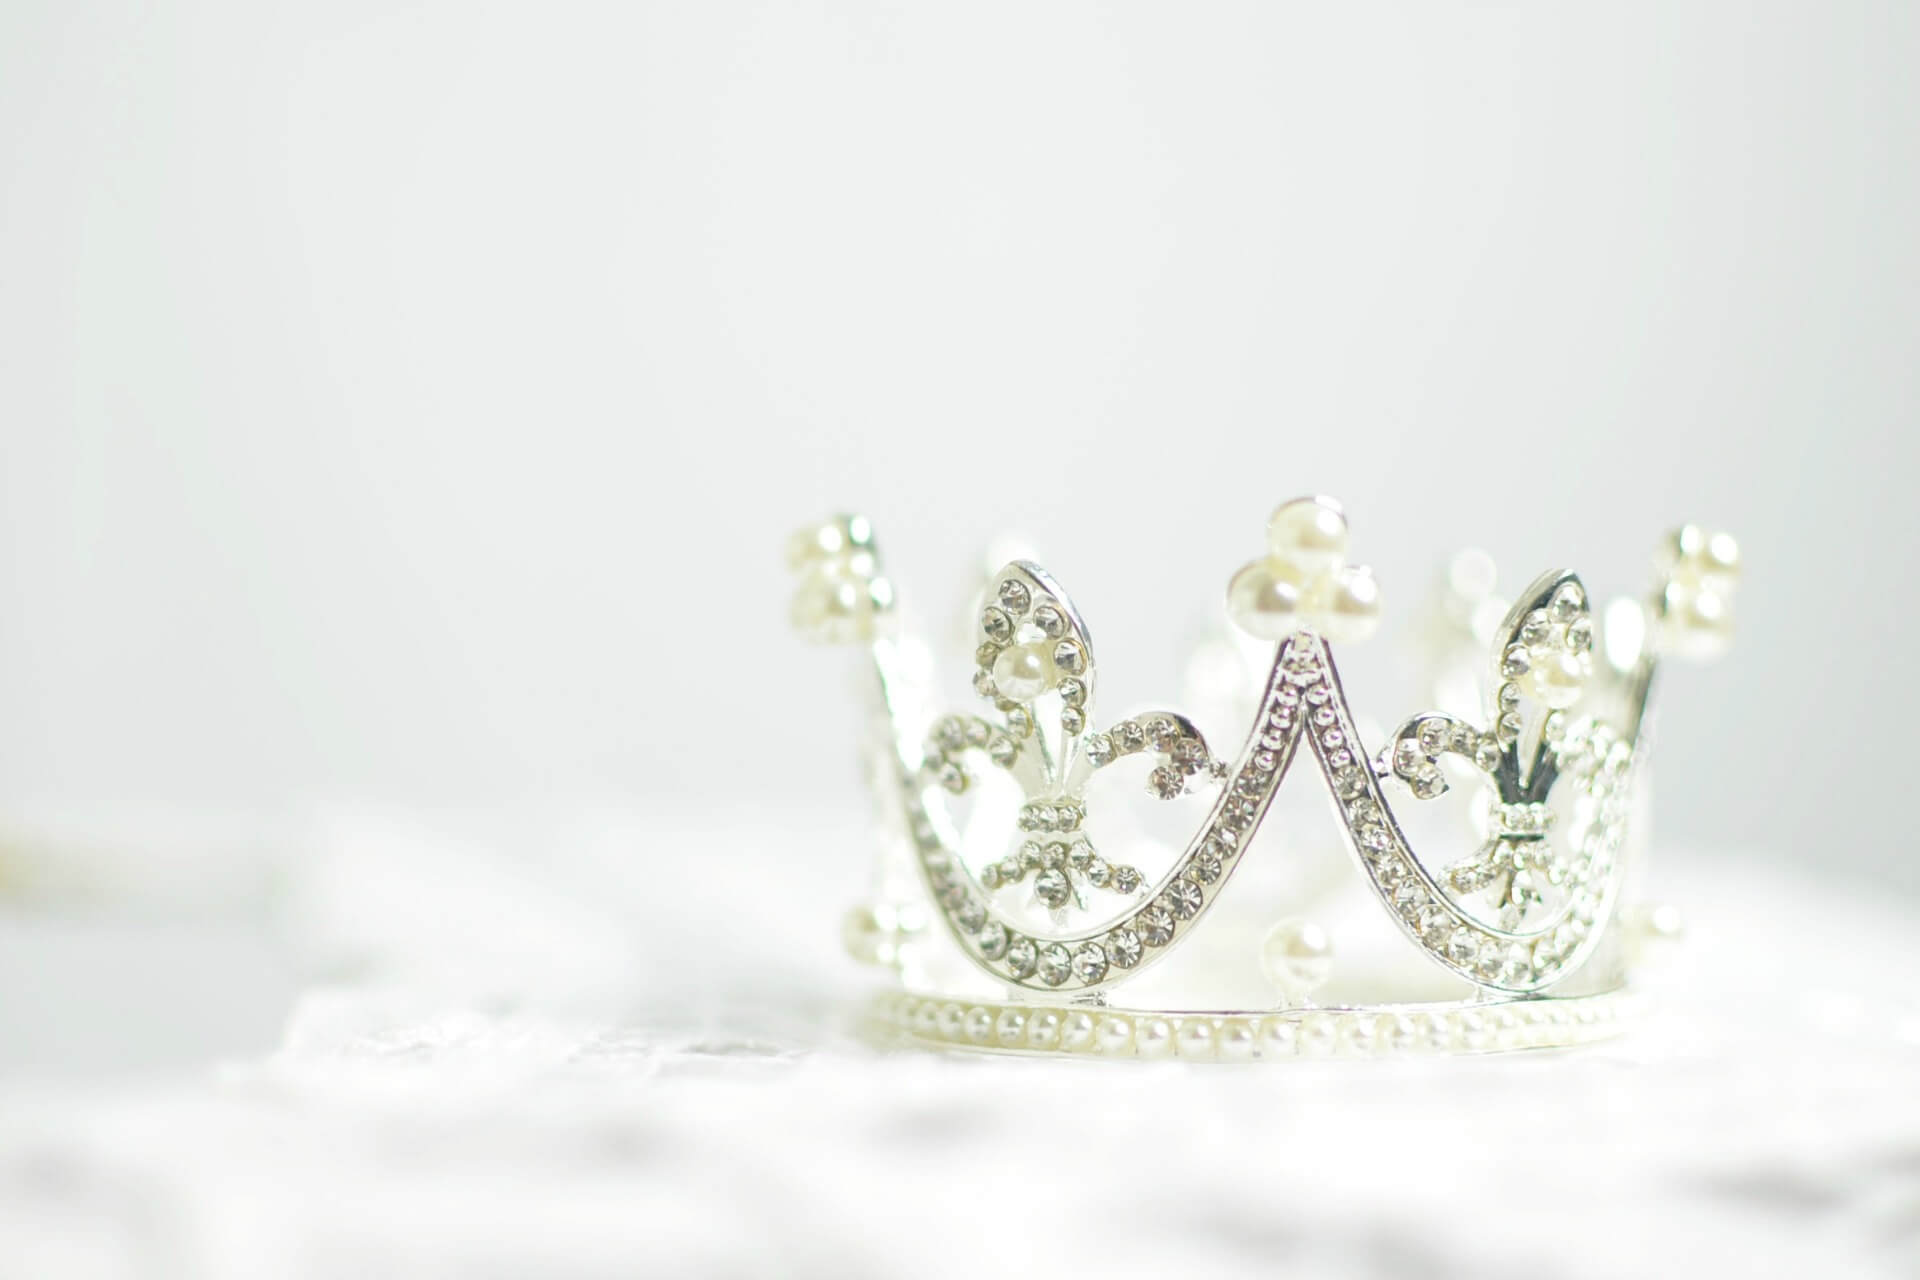 Princess Party Tiara